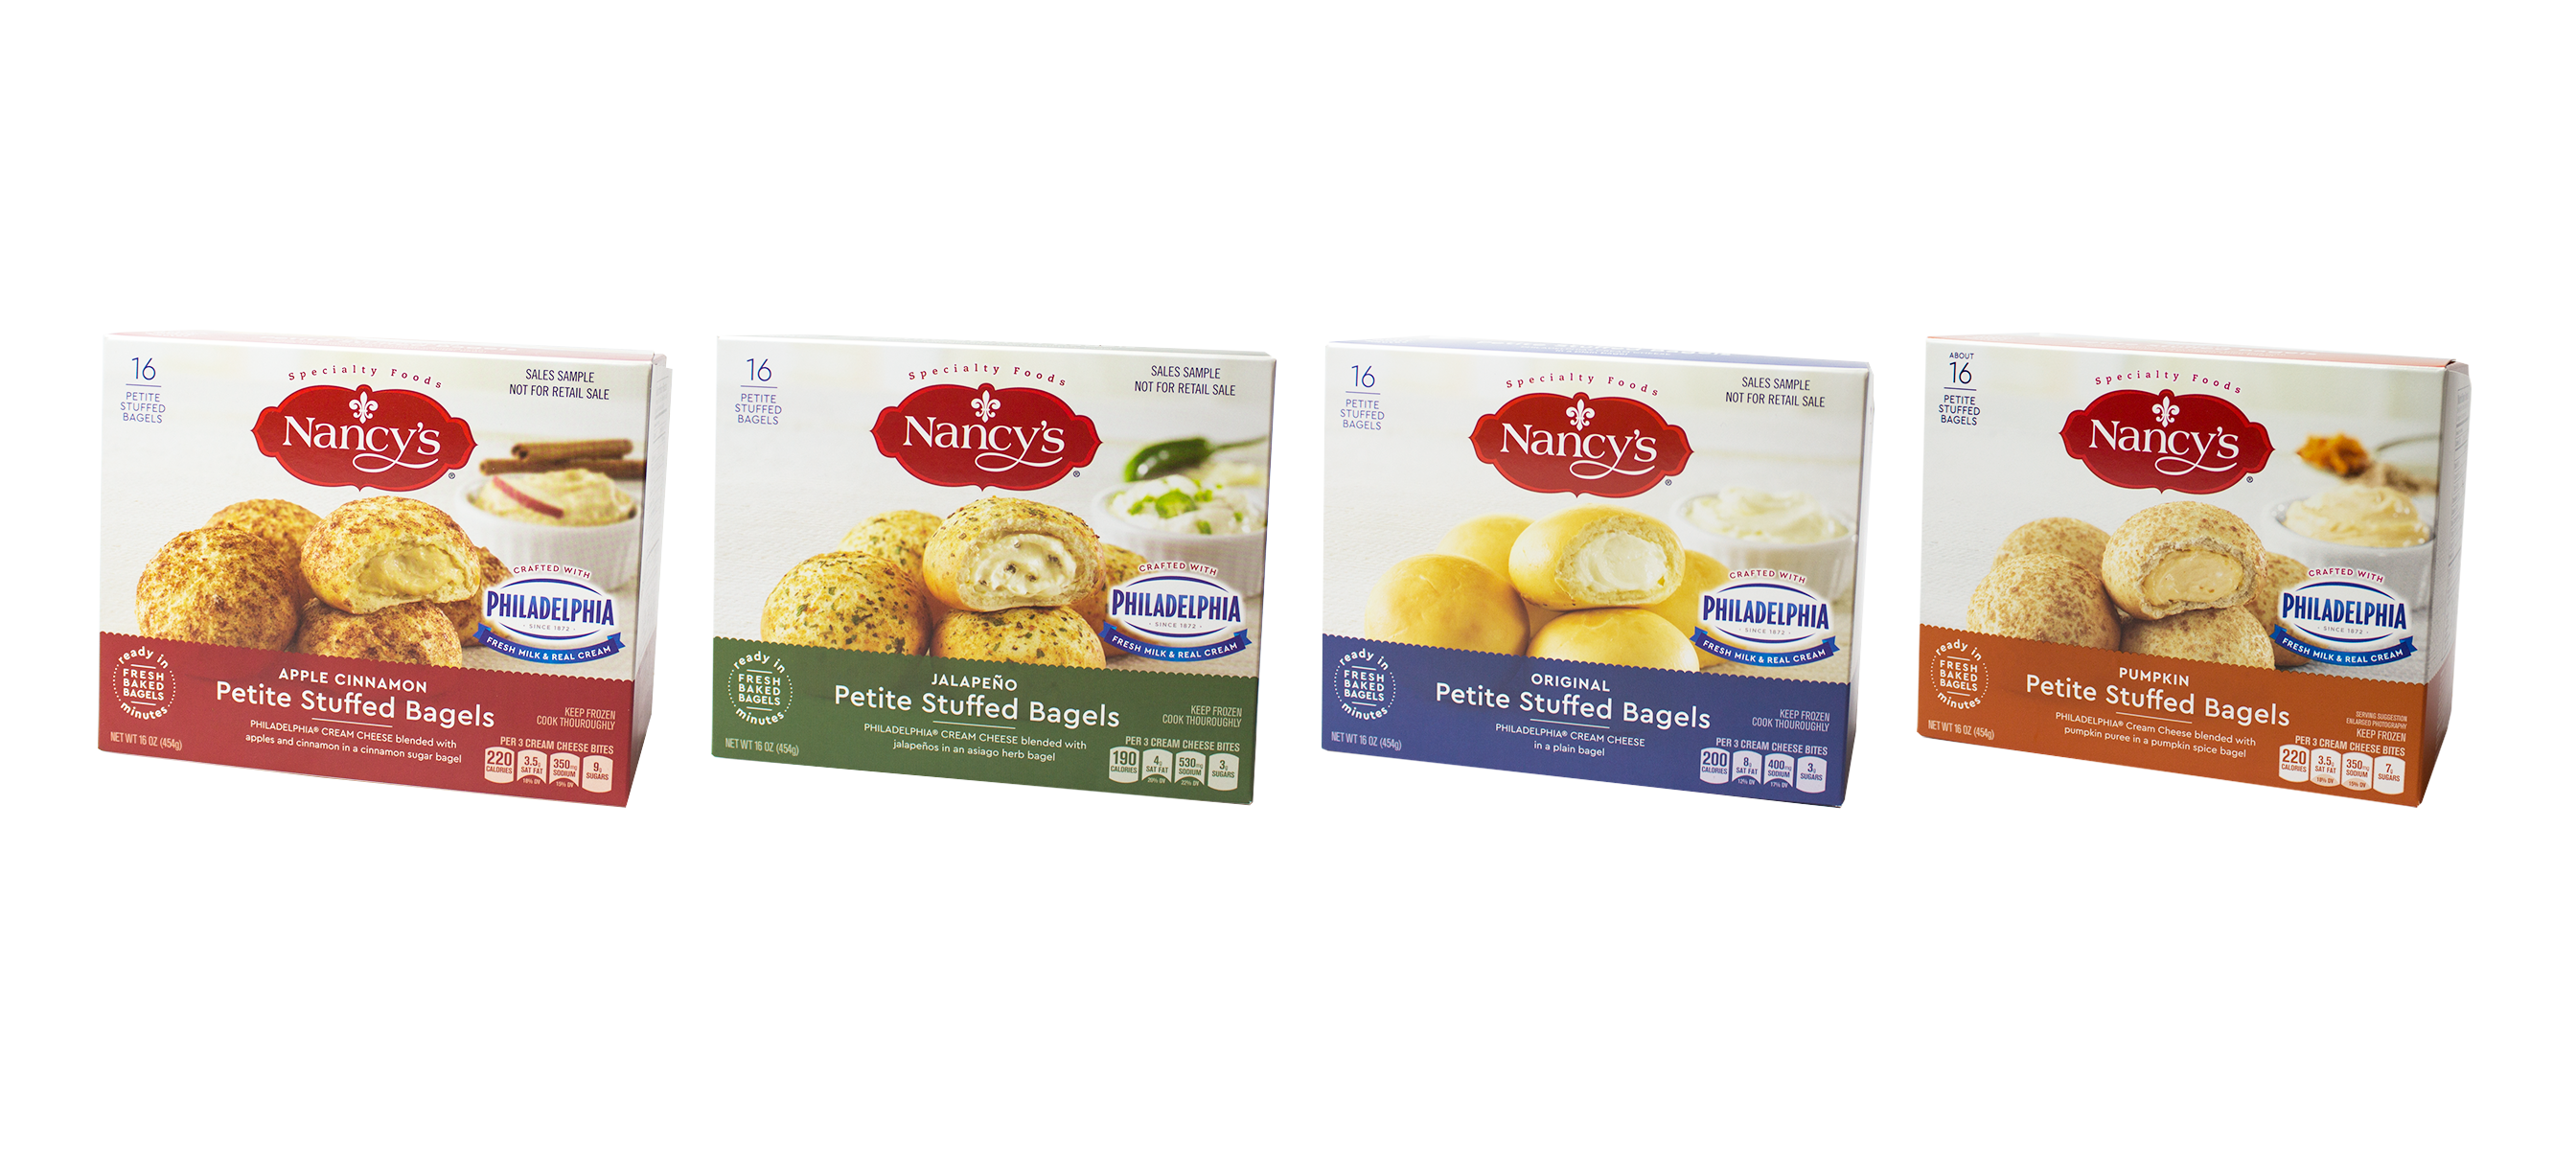 Now available on shelves nationwide, Nancy's Petite Stuffed Bagels are freshly baked bagels, made with fresh milk and real cream, ready to serve and enjoy in minutes, in four exceptional flavors, now bringing effortless elegance to homes everywhere